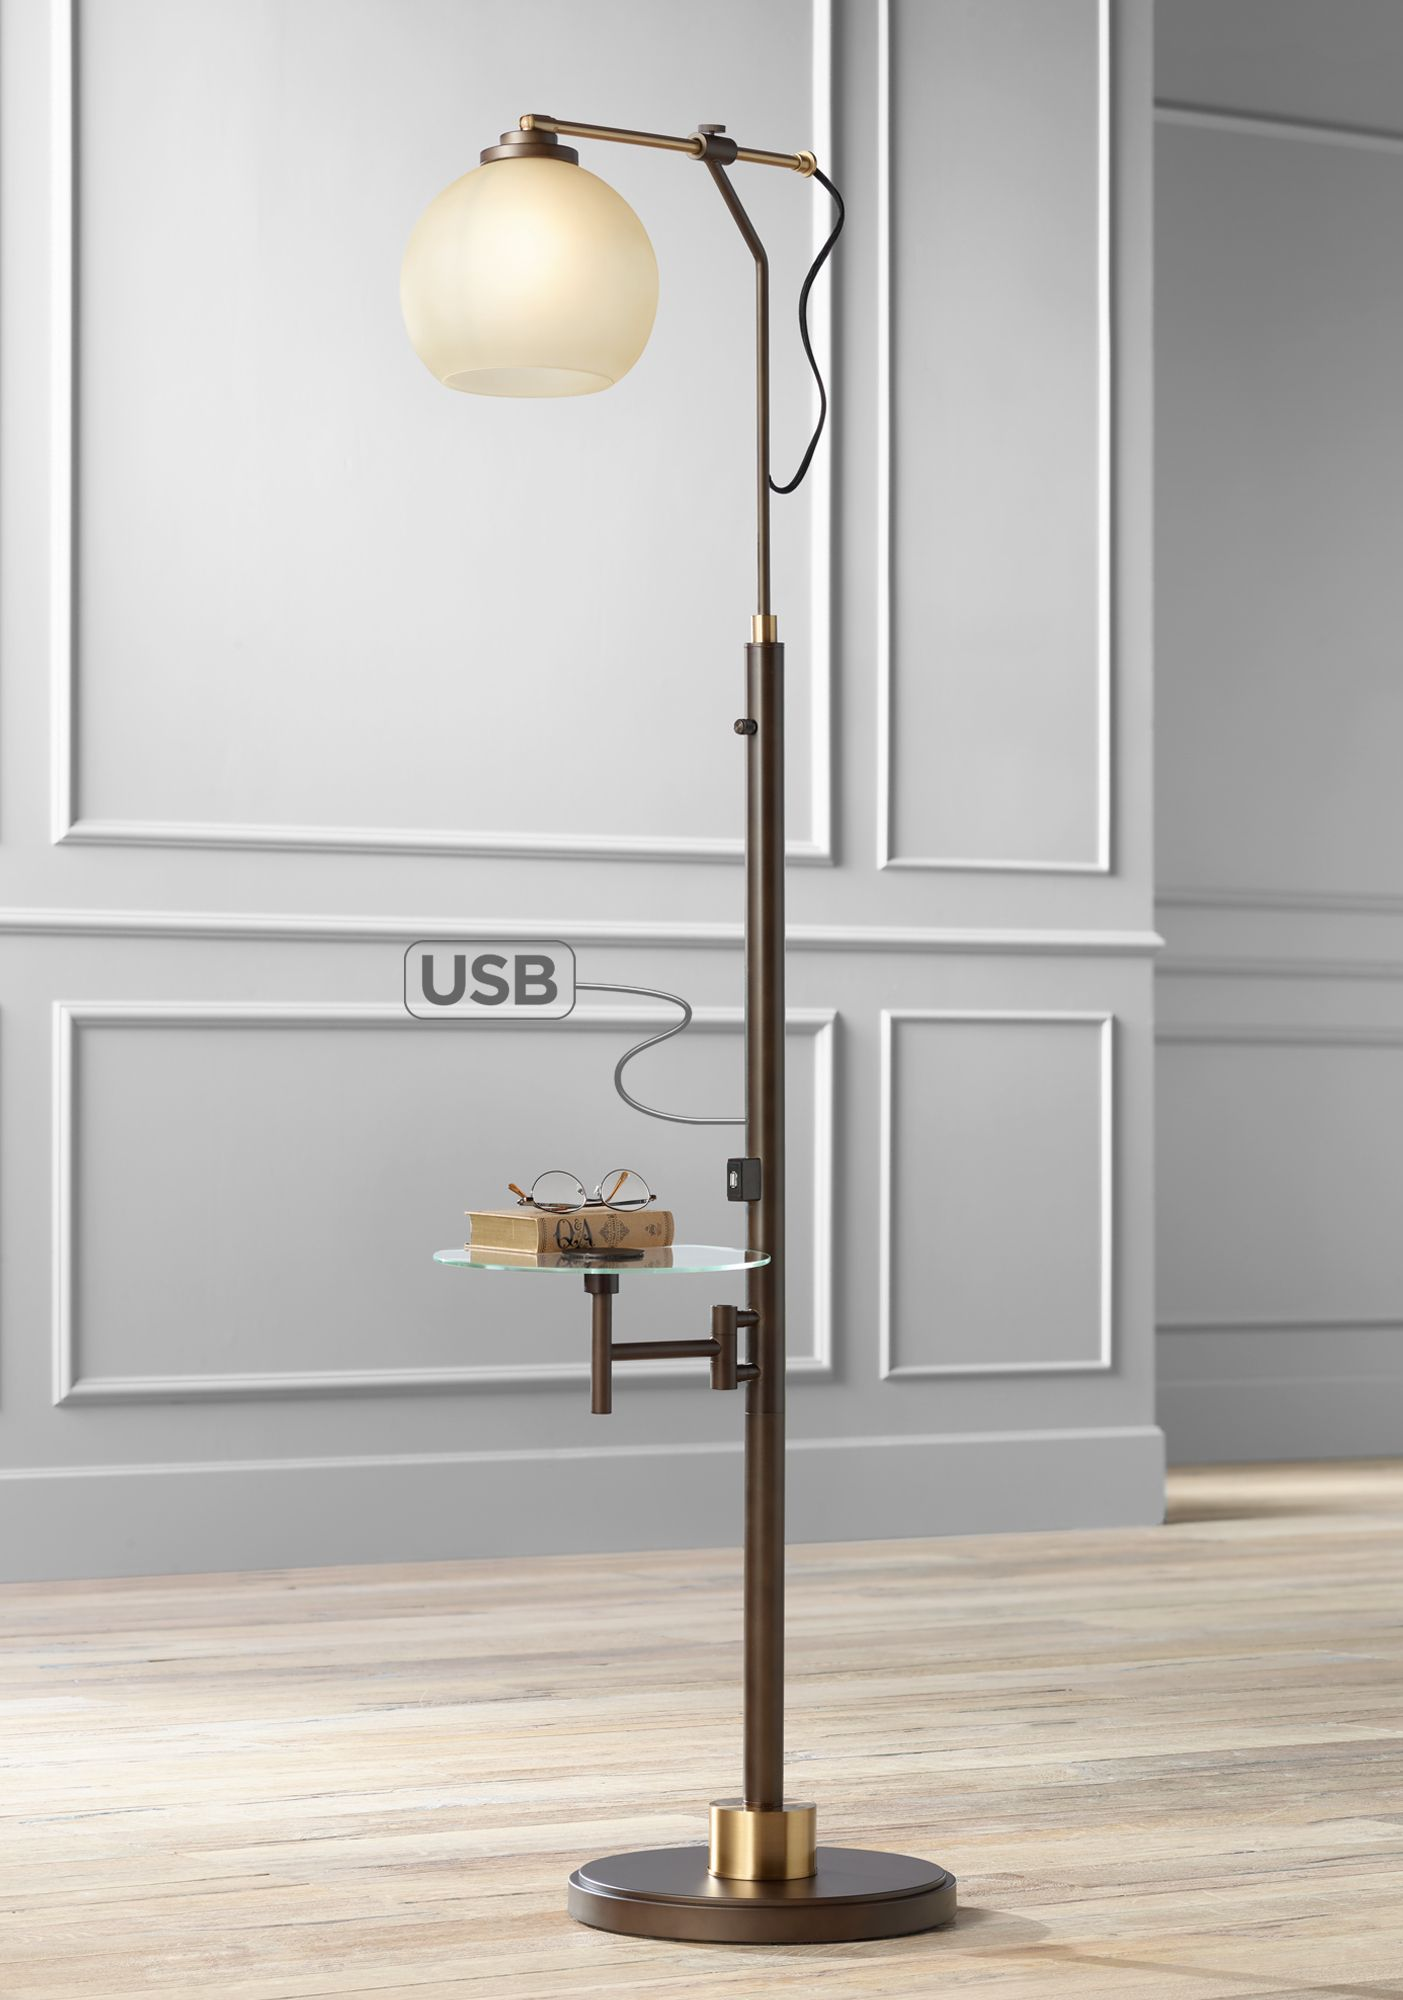 Jobe Industrial Floor Lamp With Tray Table And USB Port